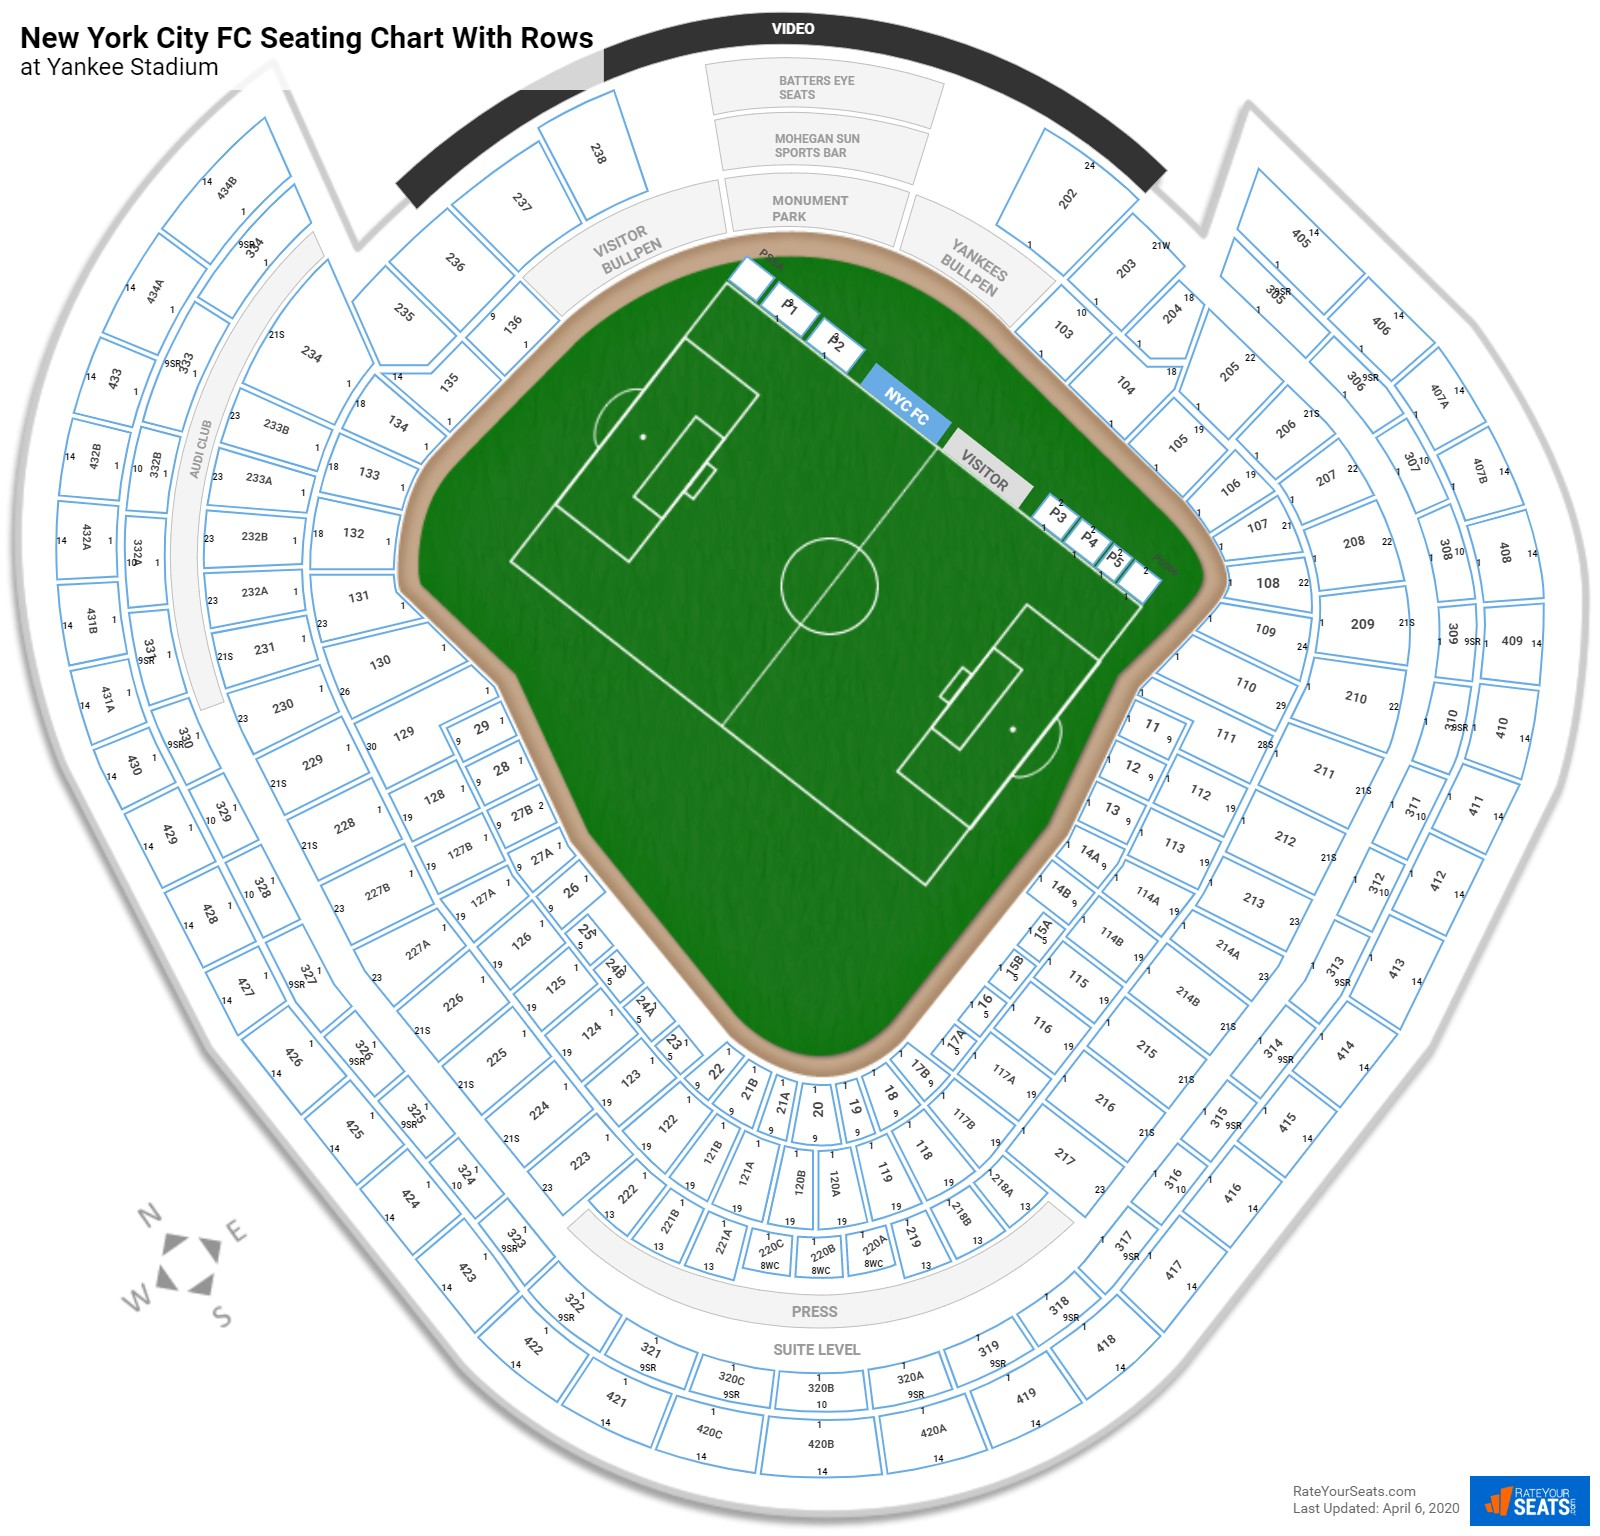 Yankee Stadium seating chart with rows soccer